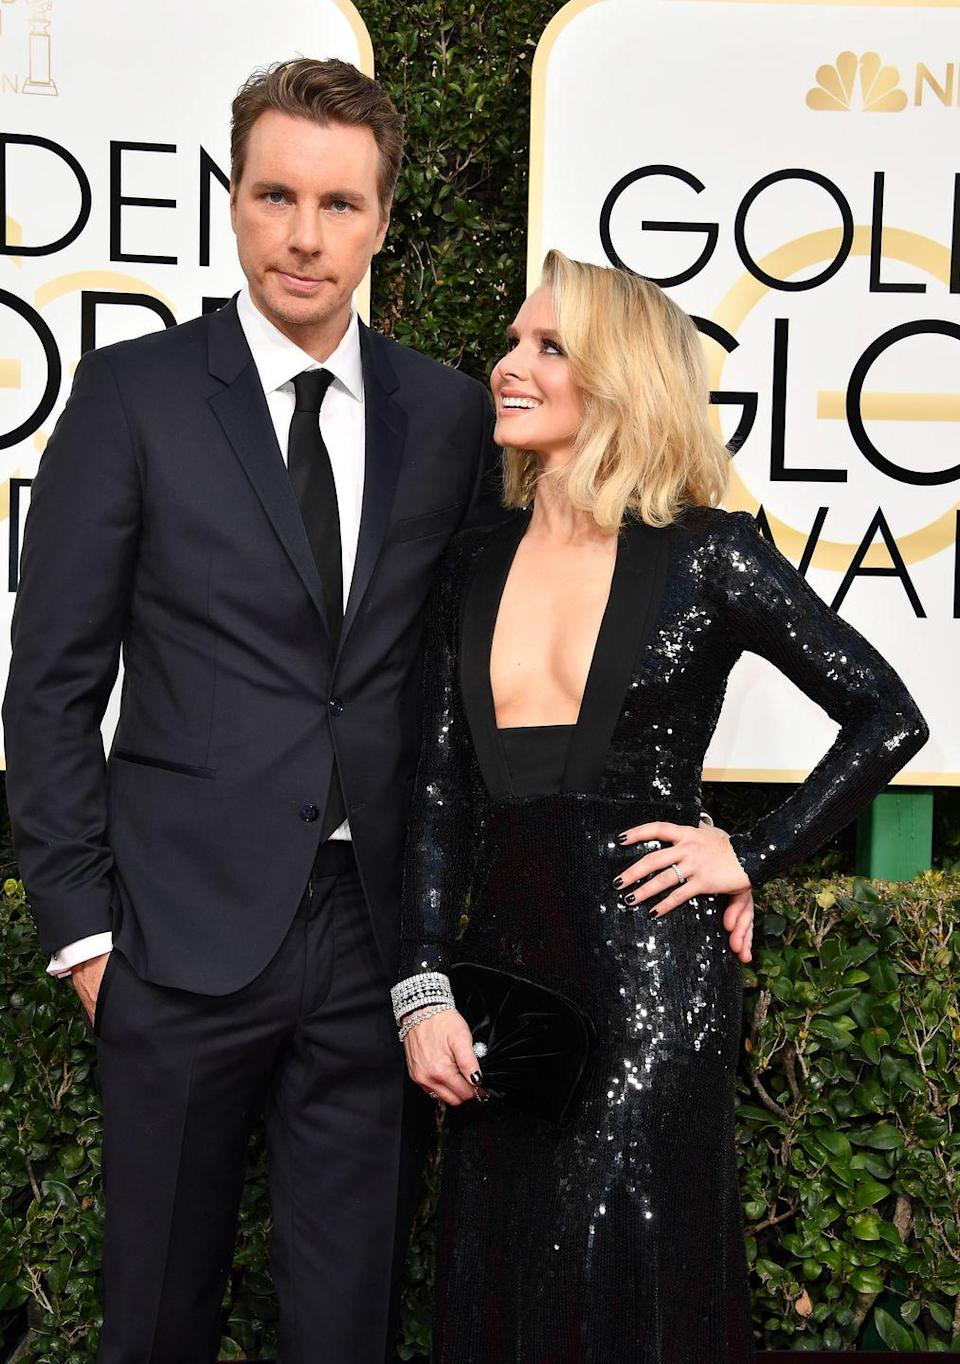 """<p>Dax Shepard and Kristen Bell aired for the unconventional when they decided to get married in 2013. They traded in a dreamy wedding venue for a <a href=""""https://www.instagram.com/p/BPvaIYdDejF/?"""" rel=""""nofollow noopener"""" target=""""_blank"""" data-ylk=""""slk:courthouse ceremony"""" class=""""link rapid-noclick-resp"""">courthouse ceremony</a> and Kristen wore a black jumpsuit and statement necklace rather than a white dress.</p>"""